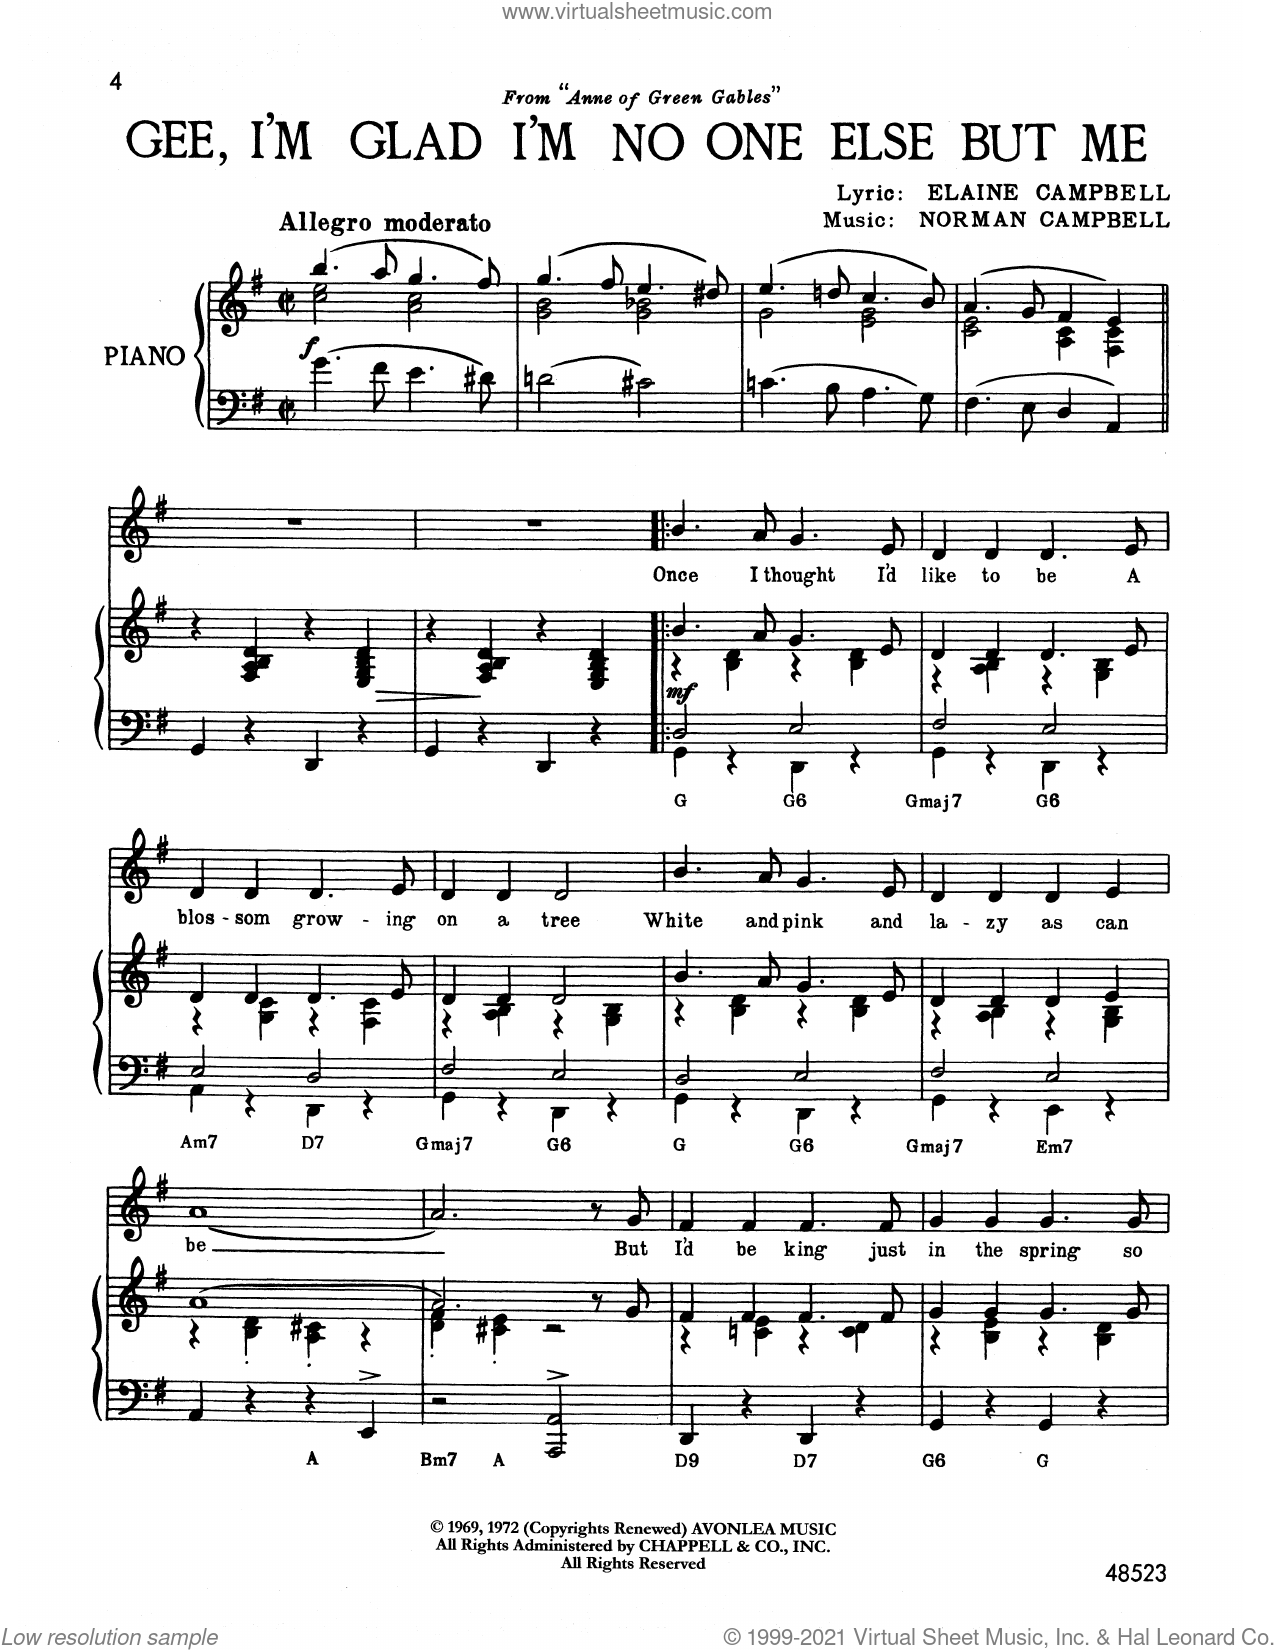 Campbell   Gee, I'm Glad I'm No One Else But Me from Anne Of Green Gables  sheet music for voice and piano